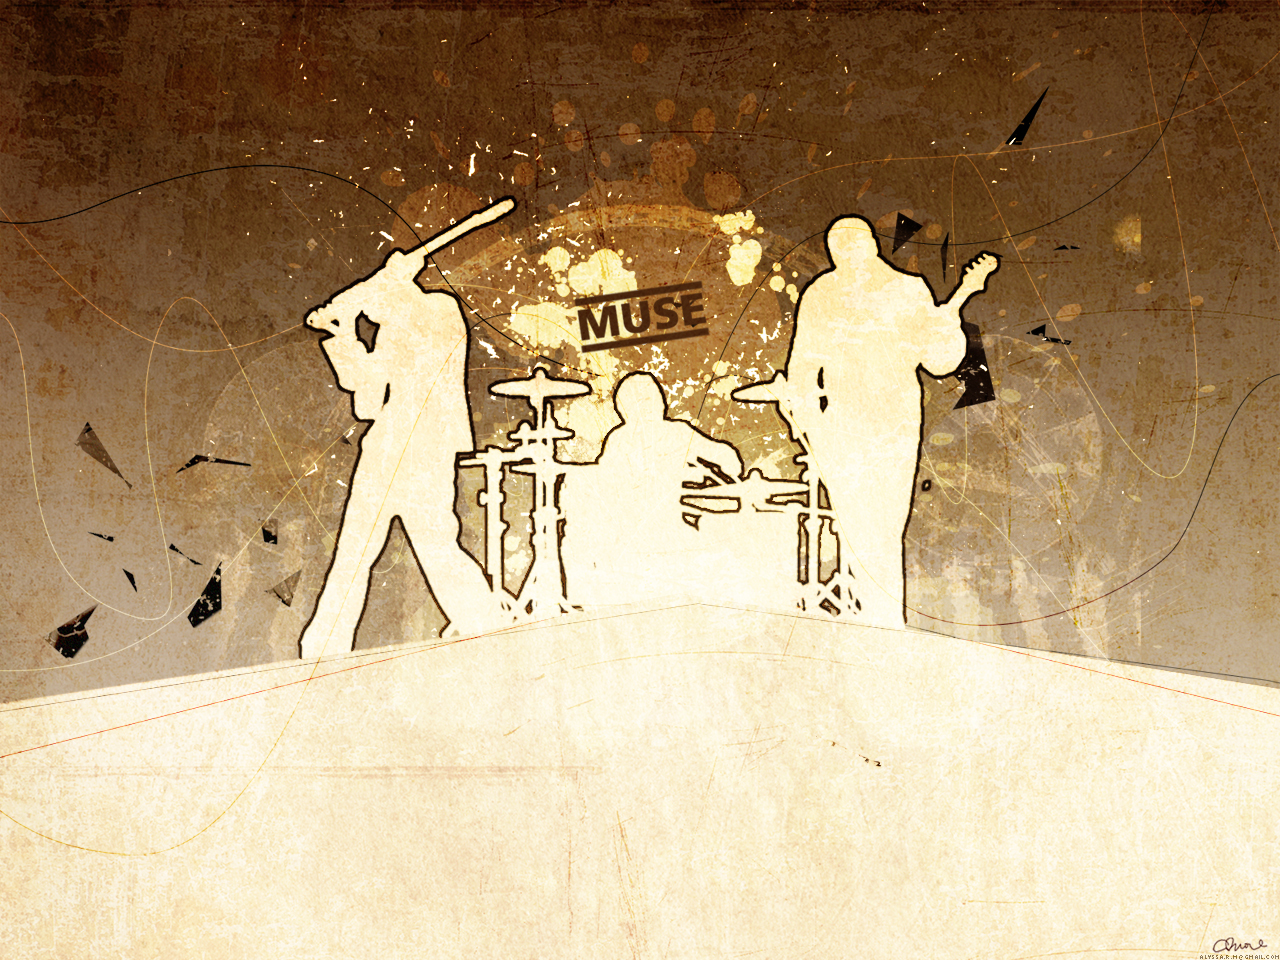 muse HD Wallpaper